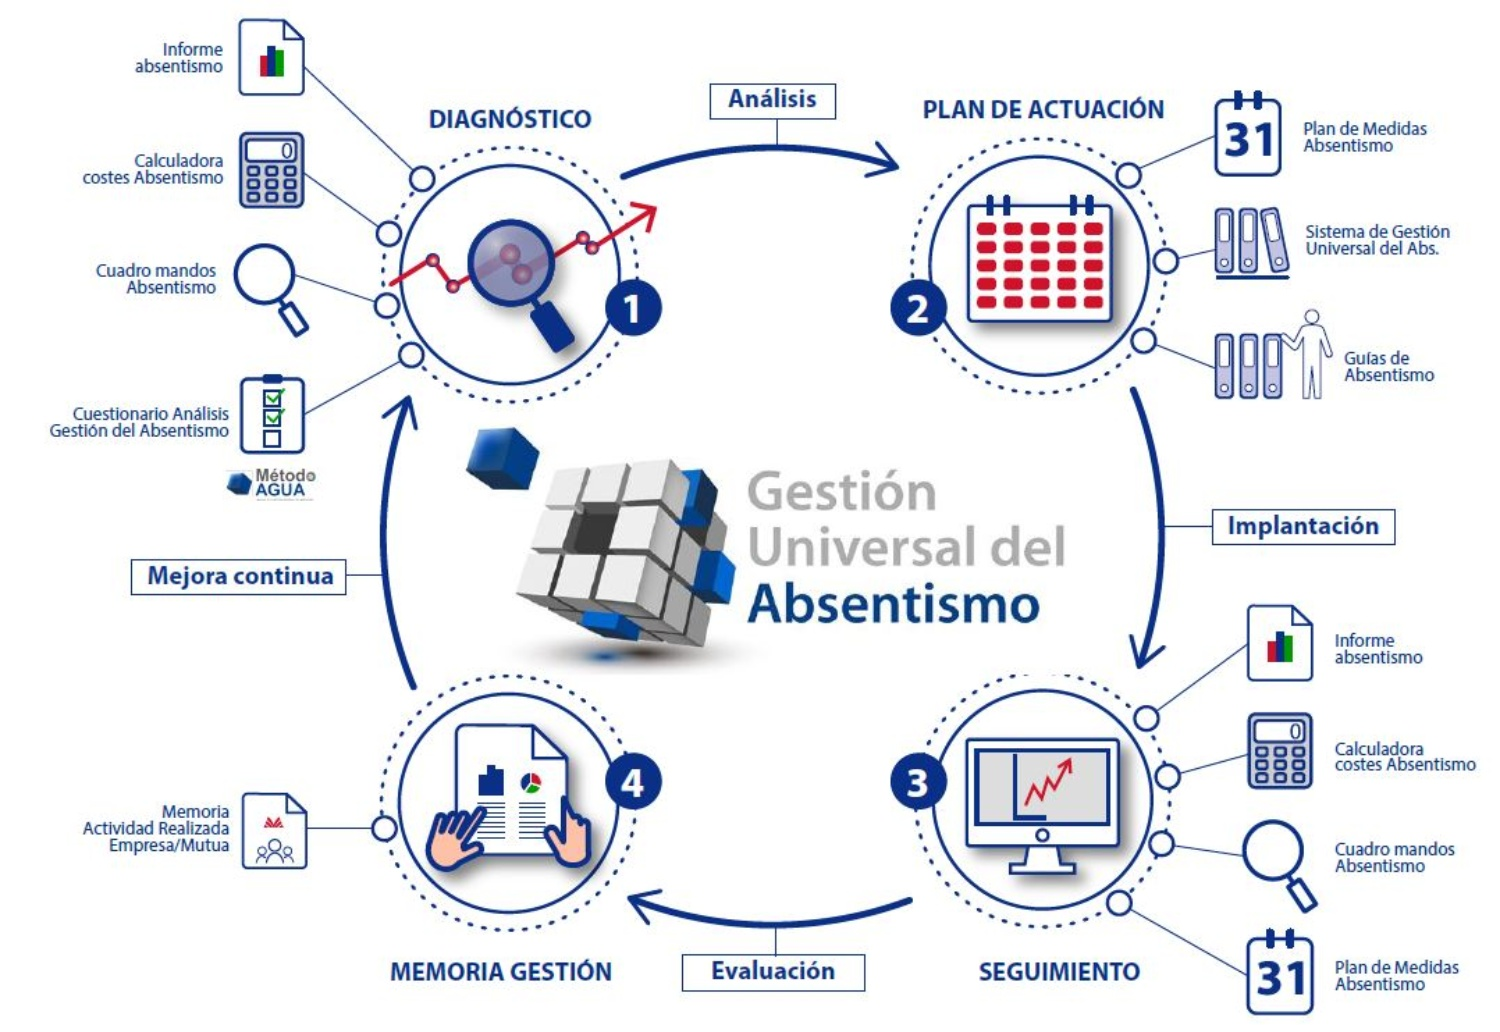 Our model for managing absenteeism